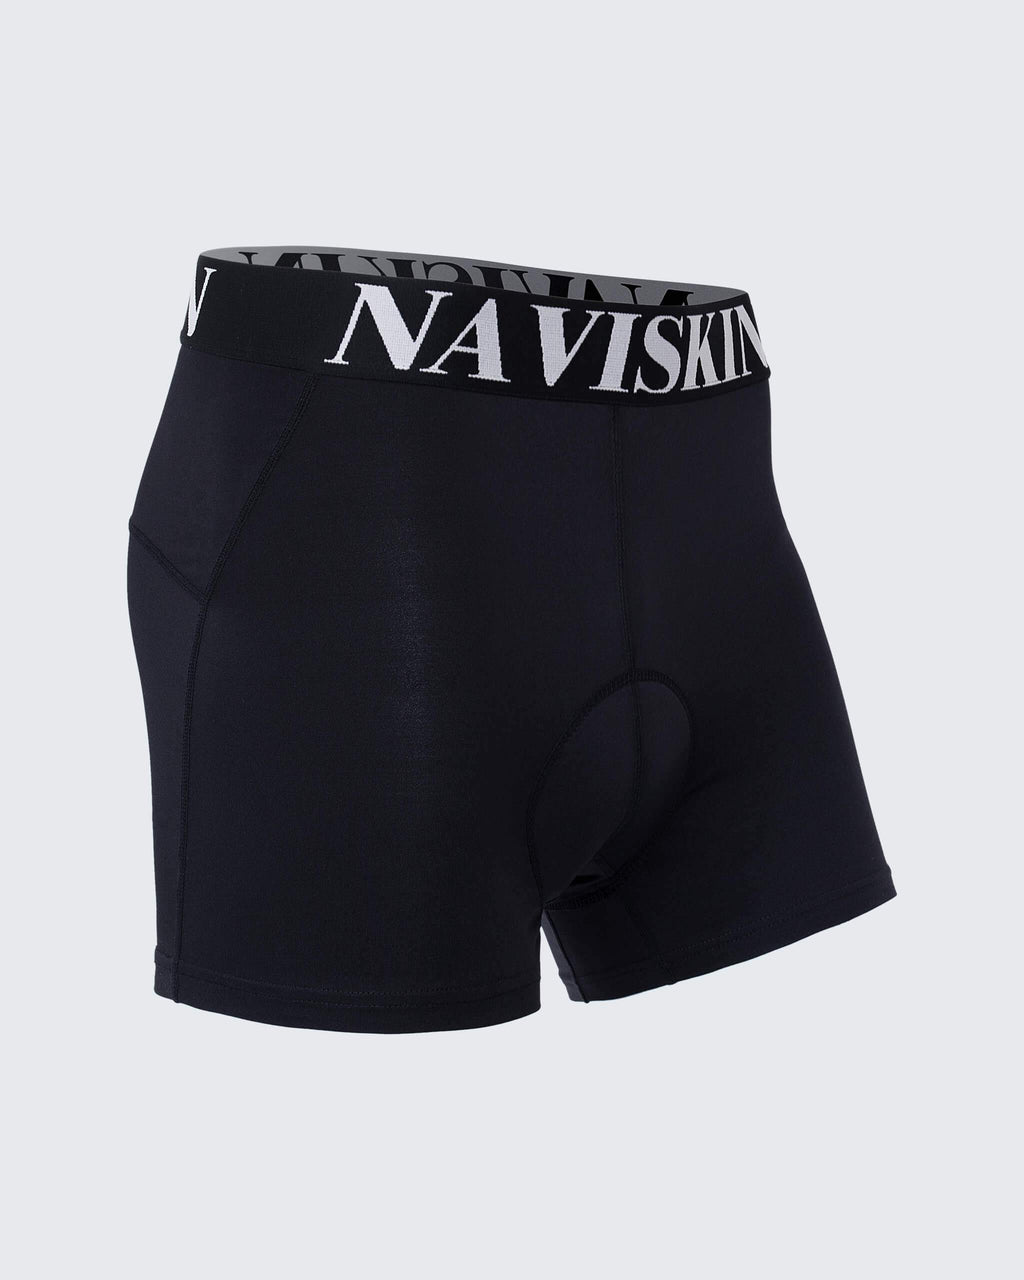 3D Padded Cycling Underwear-Naviskin